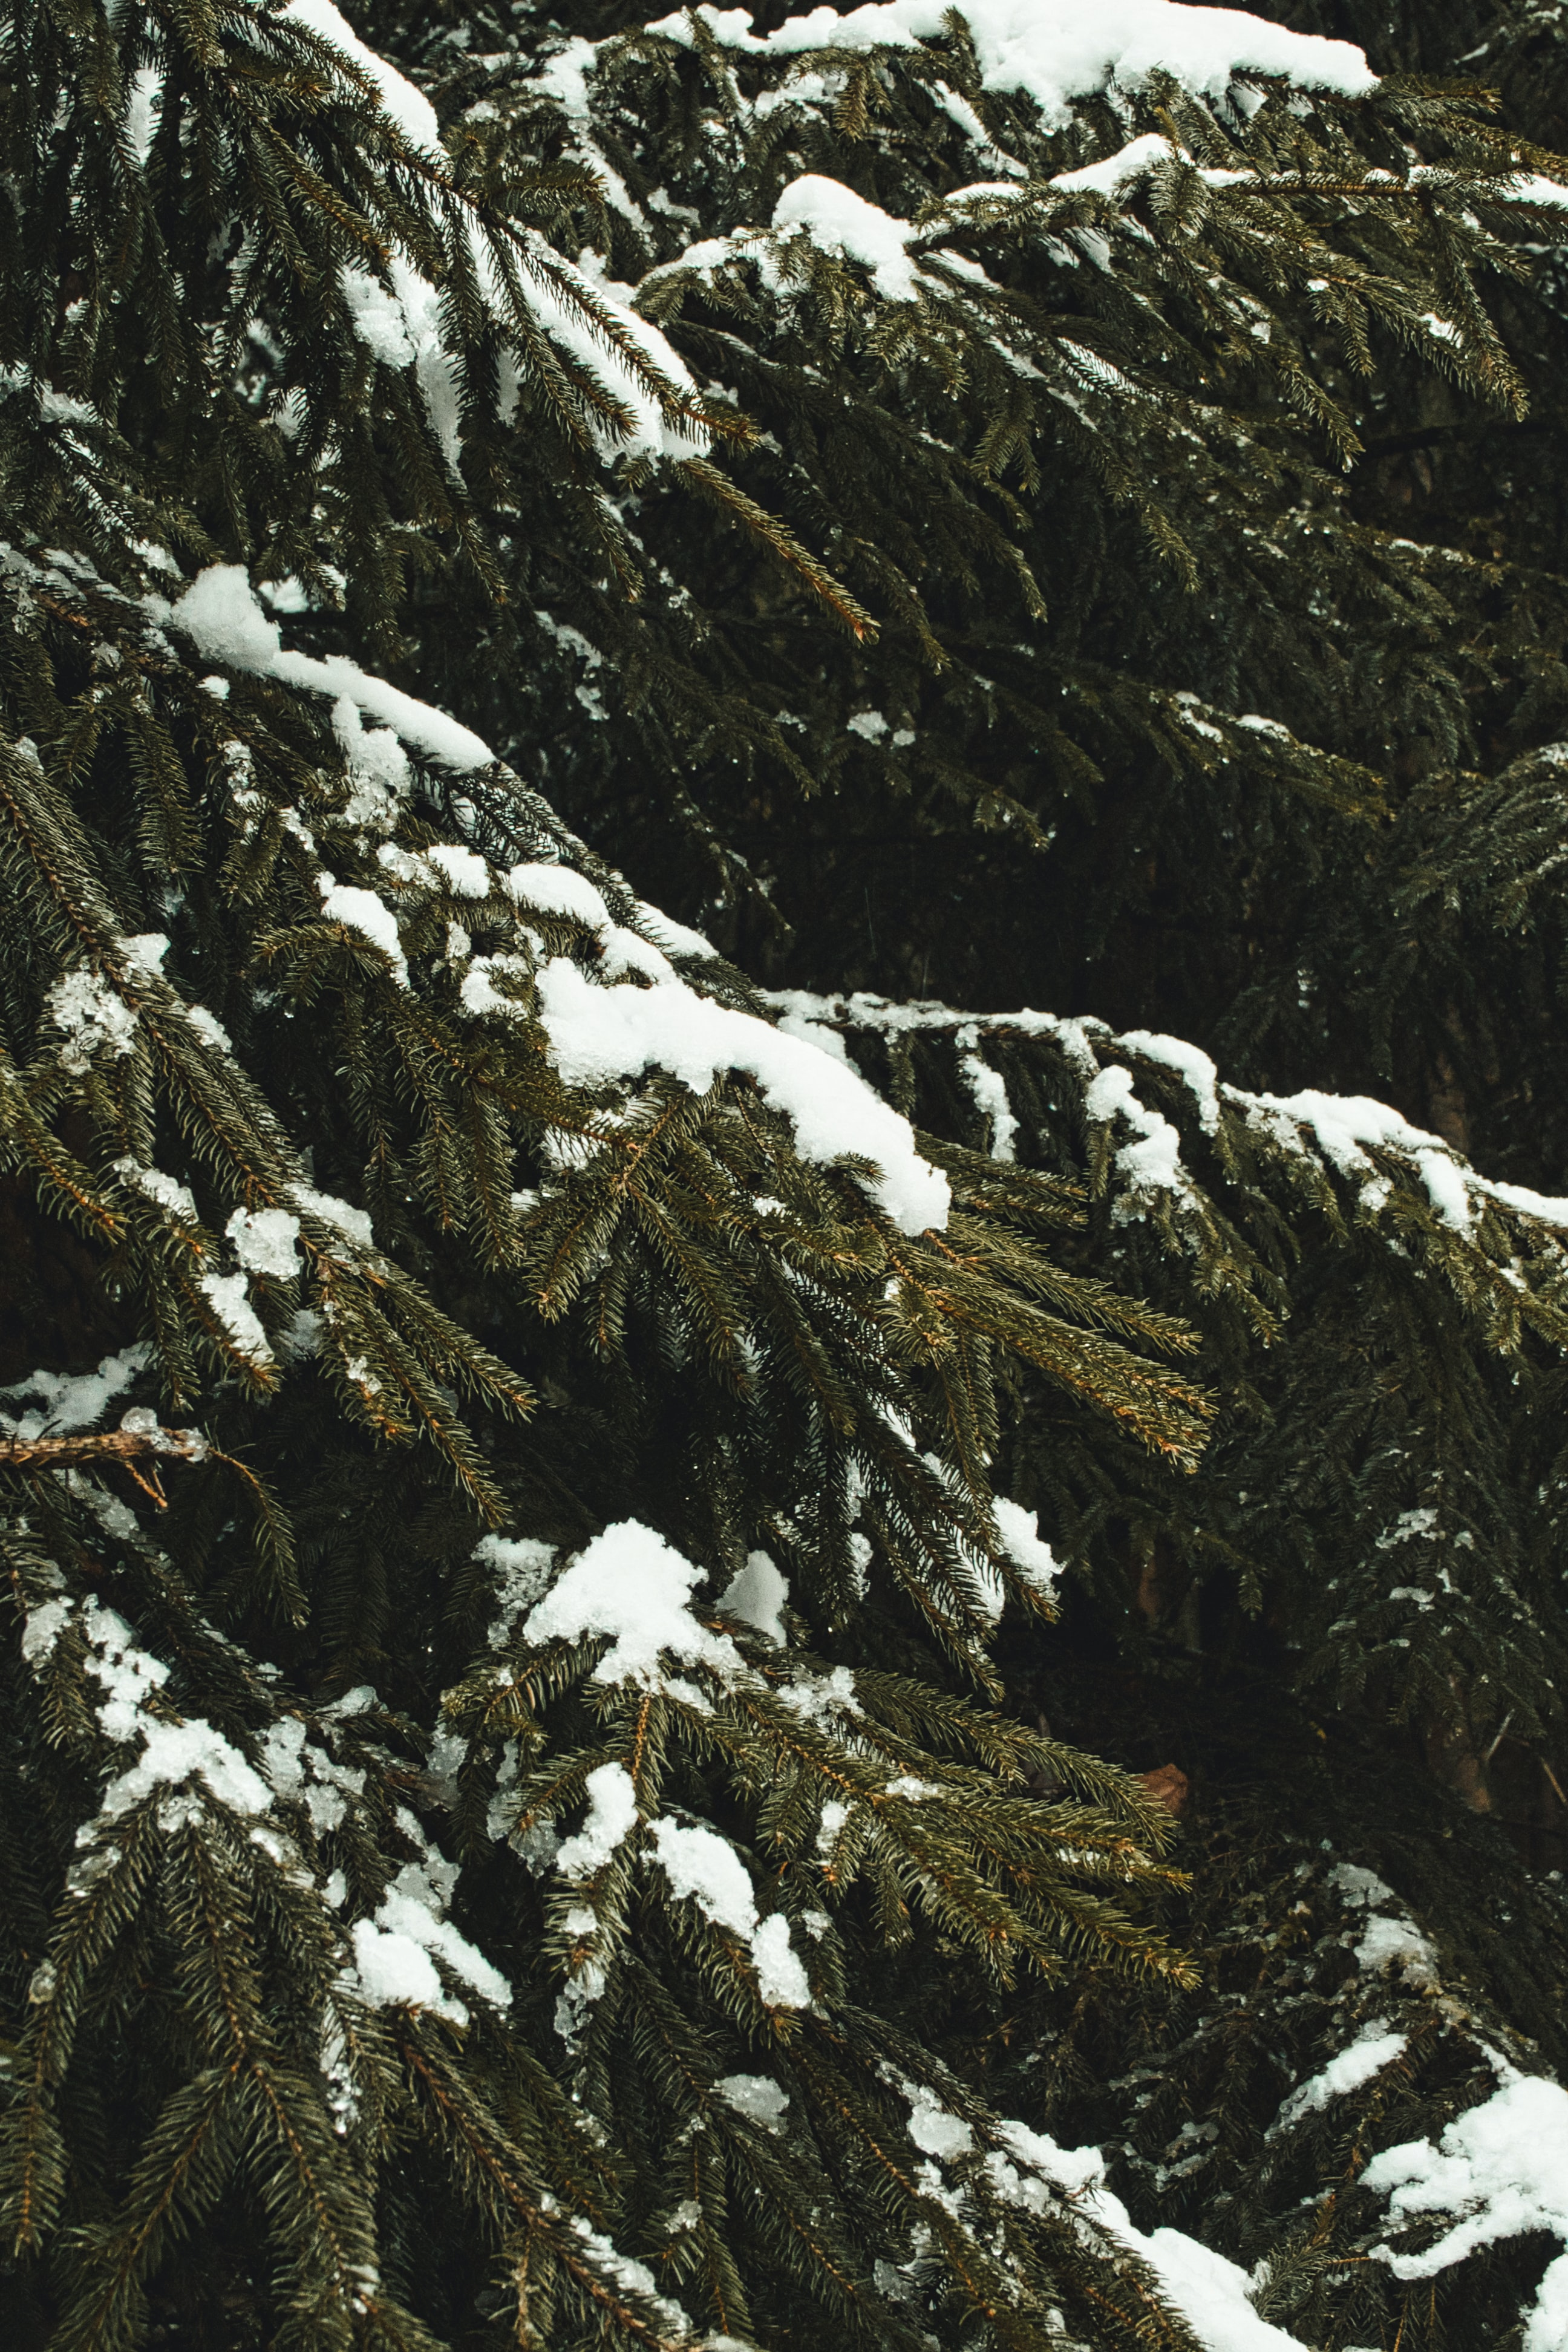 149422 download wallpaper Nature, Spruce, Fir, Branches, Snow, Trees, Winter screensavers and pictures for free